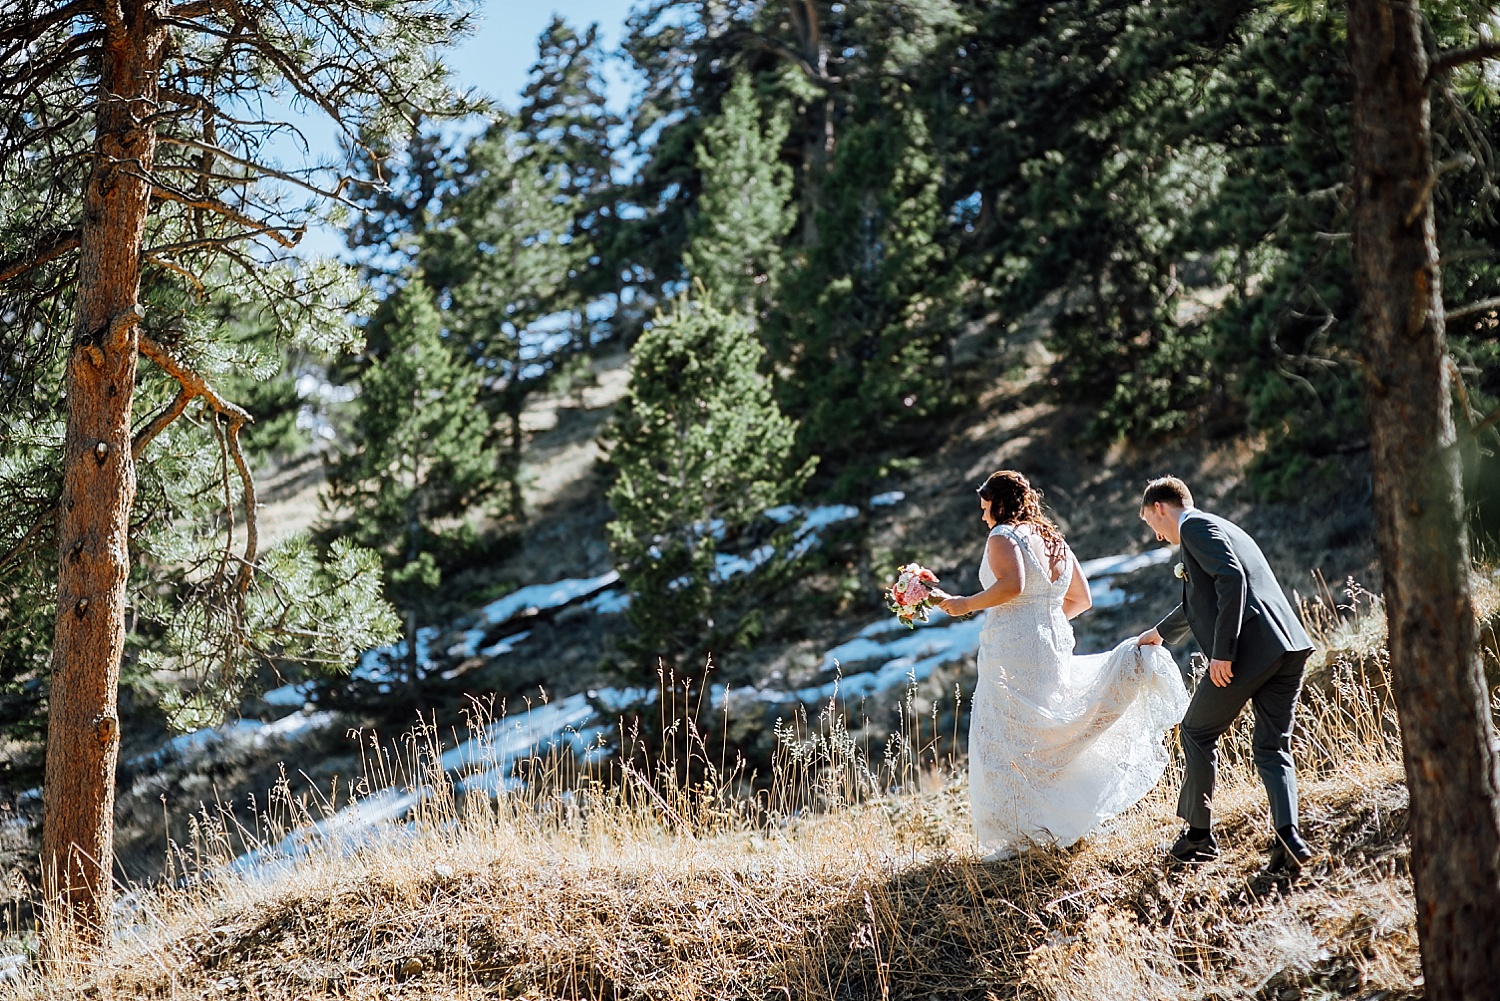 It's so cute how the groom is holding the bride's dress. Estes Park is so beautiful! What a nice mountainwedding venue.Photo by Maddie Mae Photography